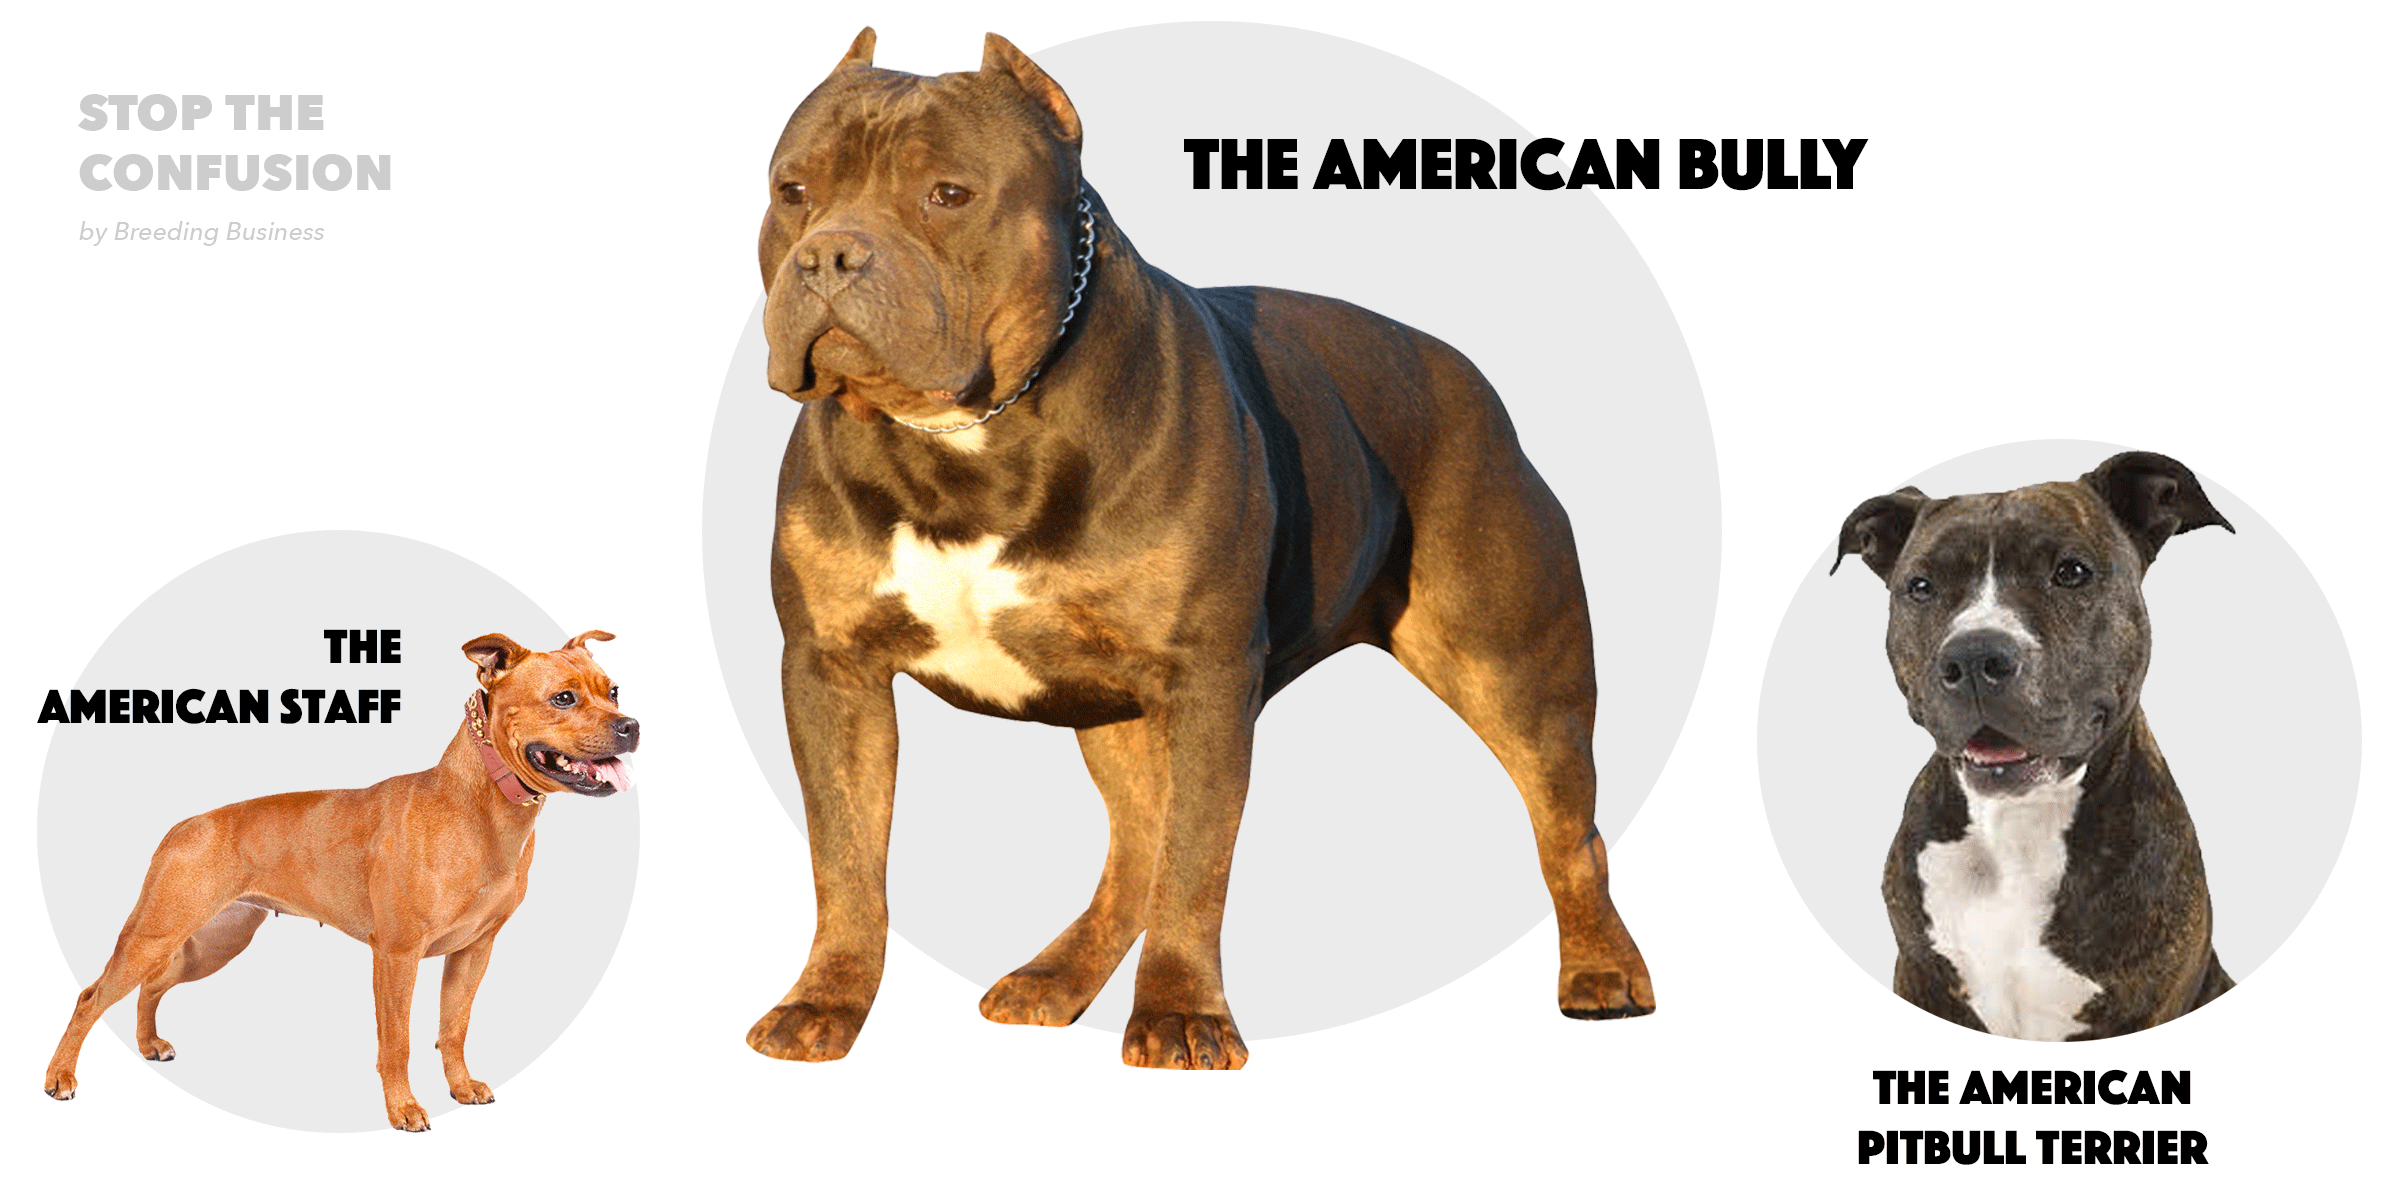 ... Bully is bullier , less terrier than the Staff and the Pitbull